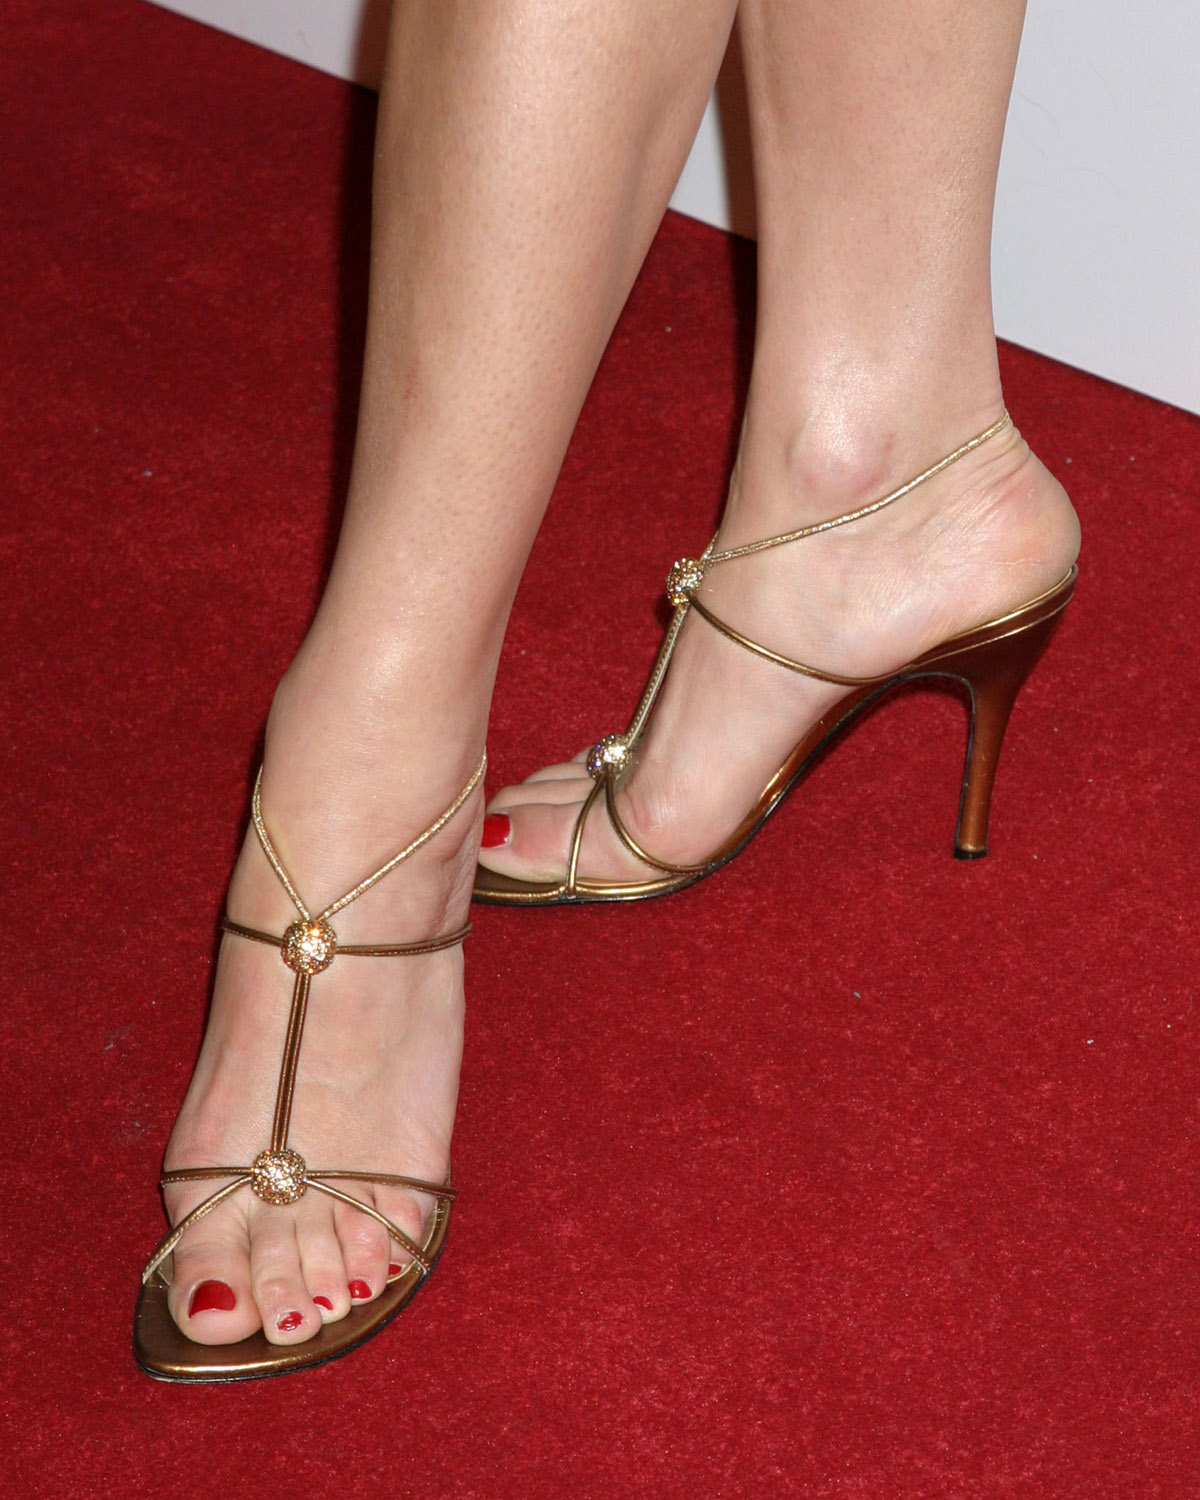 Ashley Scott Shoe Size